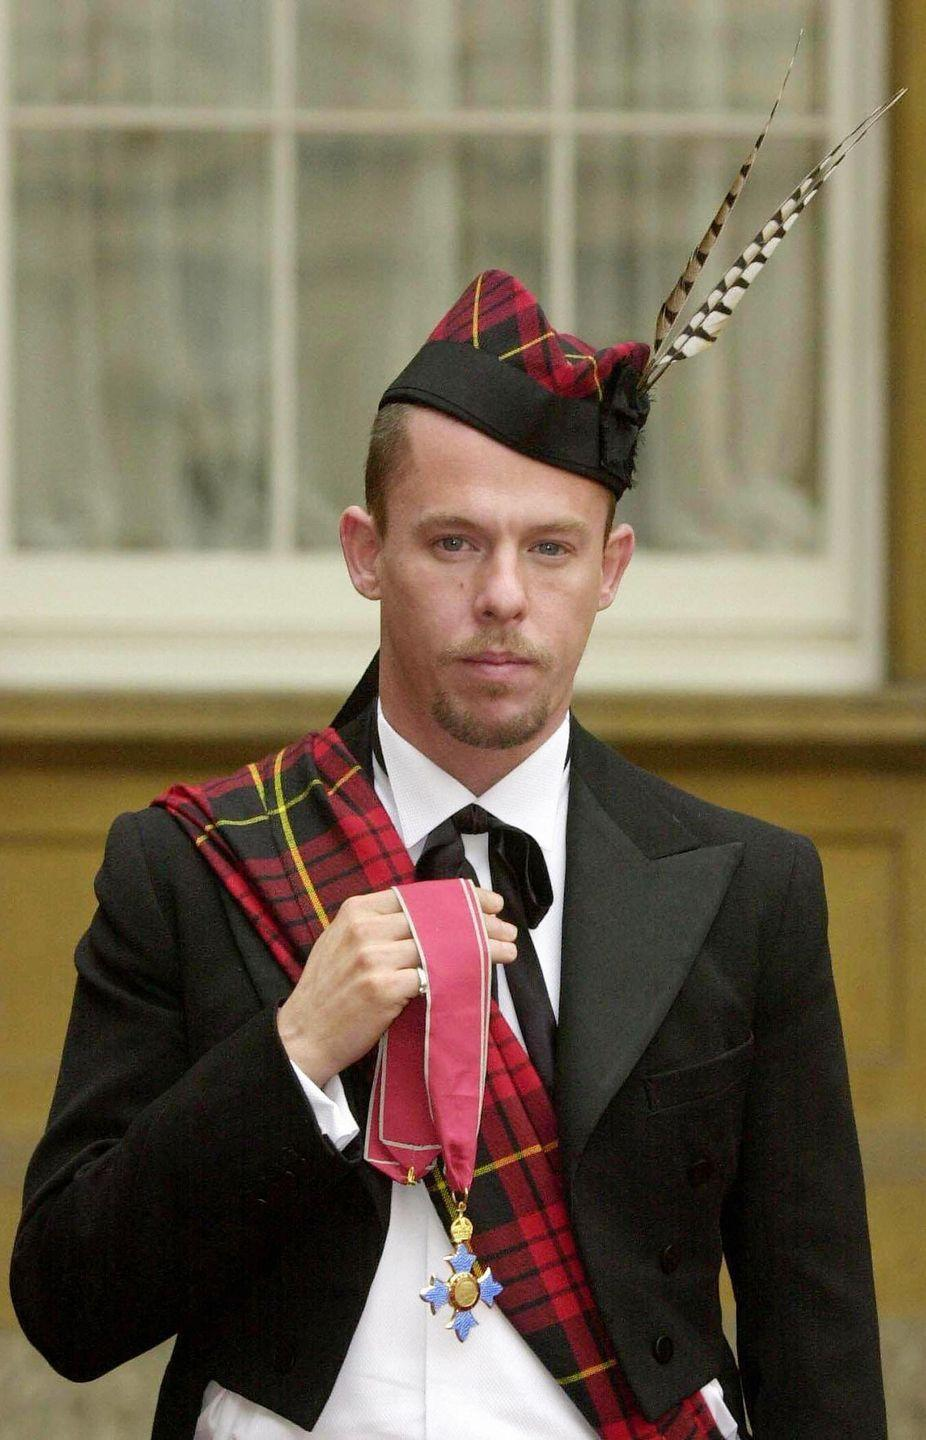 <p>British fashion designer Alexander McQueen chose to honor his heritage and sported a tartan sash and matching hat when he was awarded an OBE by Queen Elizabeth.</p>